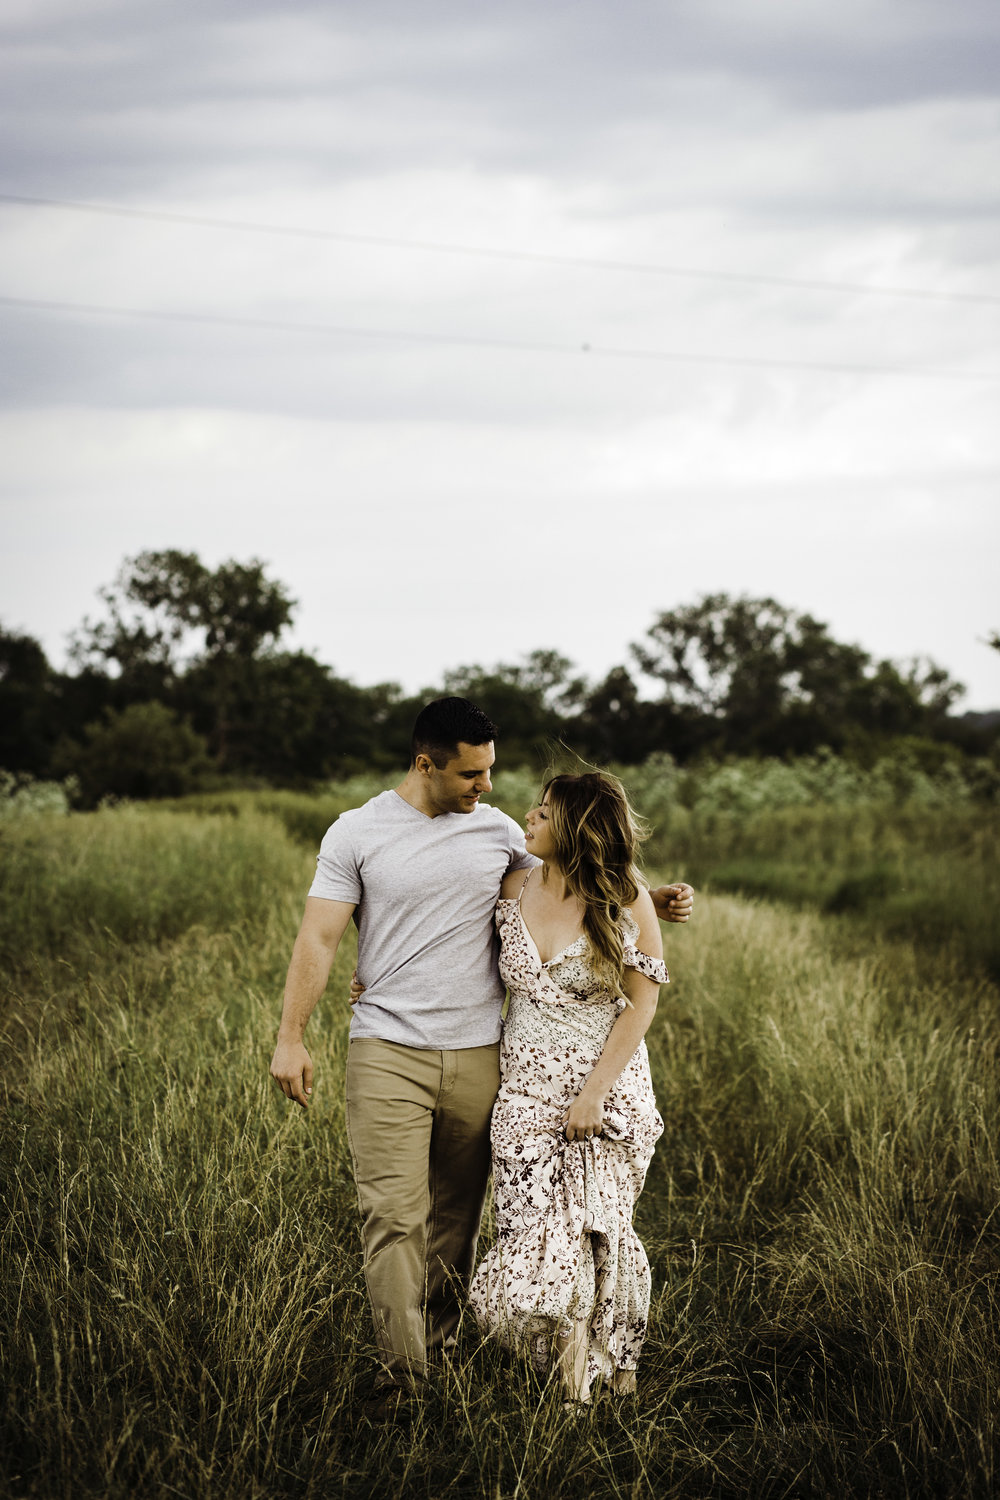 elopement-engagement-wedding-adventure-photographer